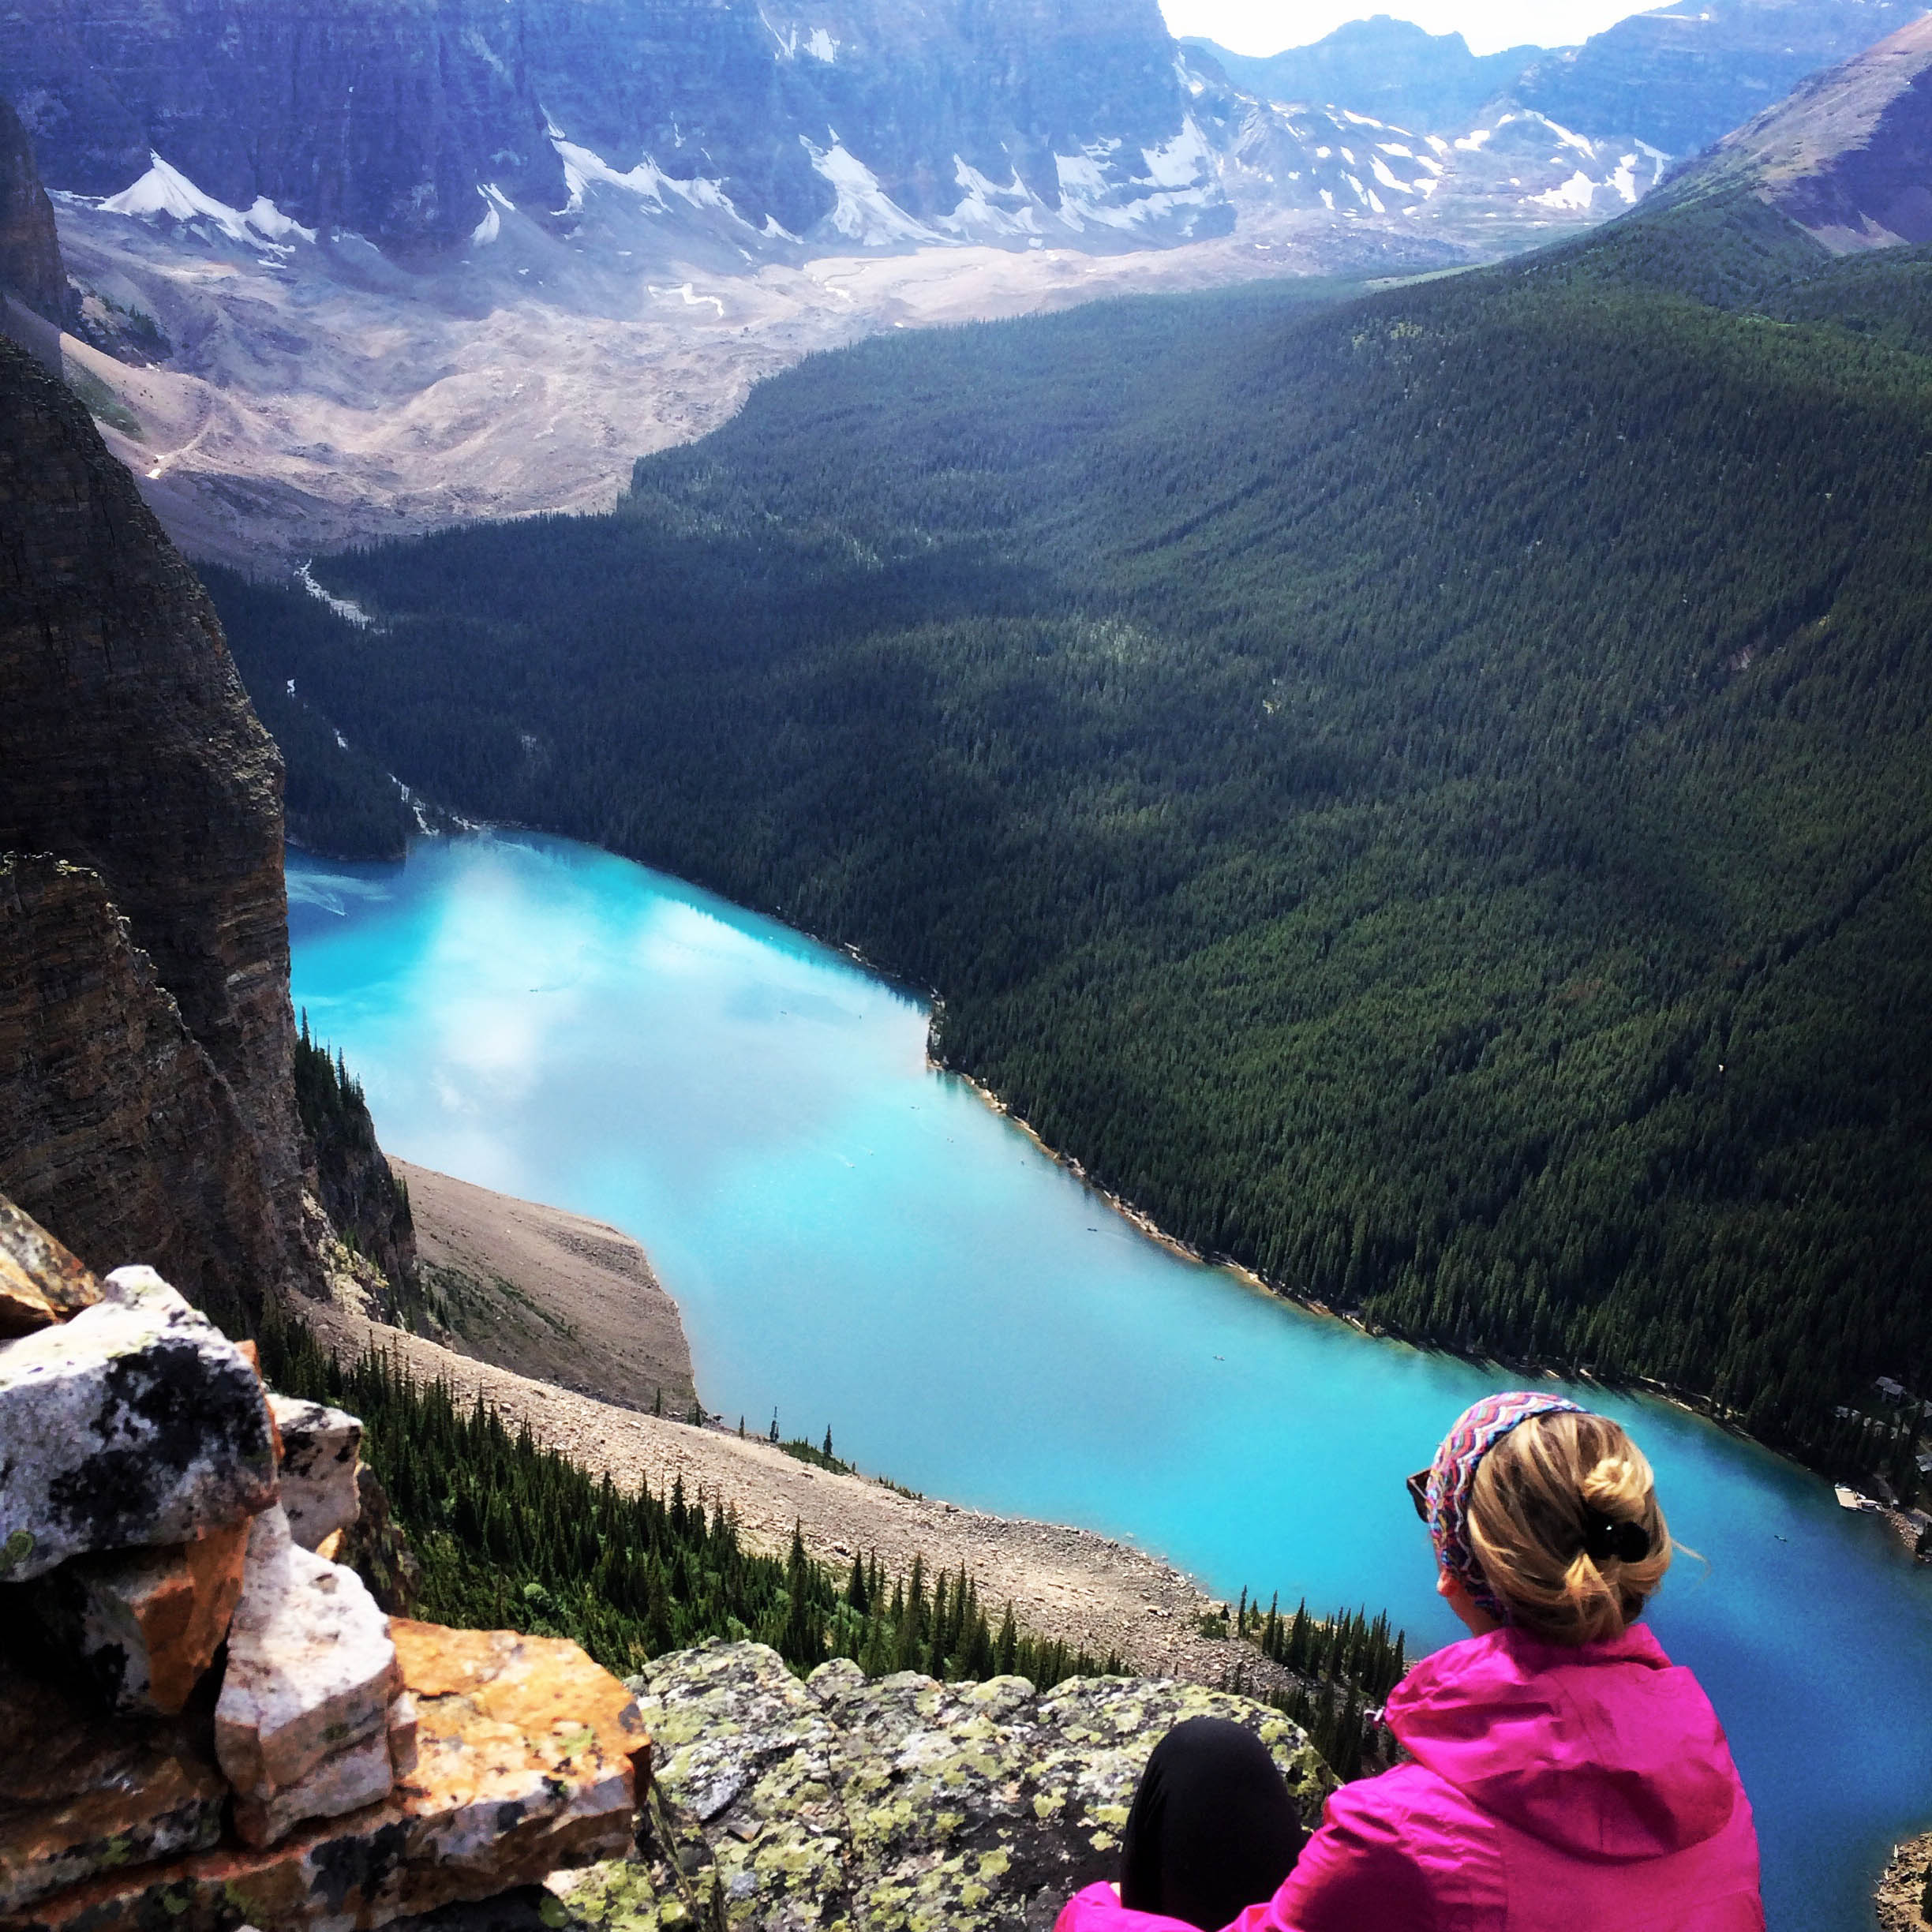 Canadian adventure activities - the great canadian bucket list, the pink backpack travel blog